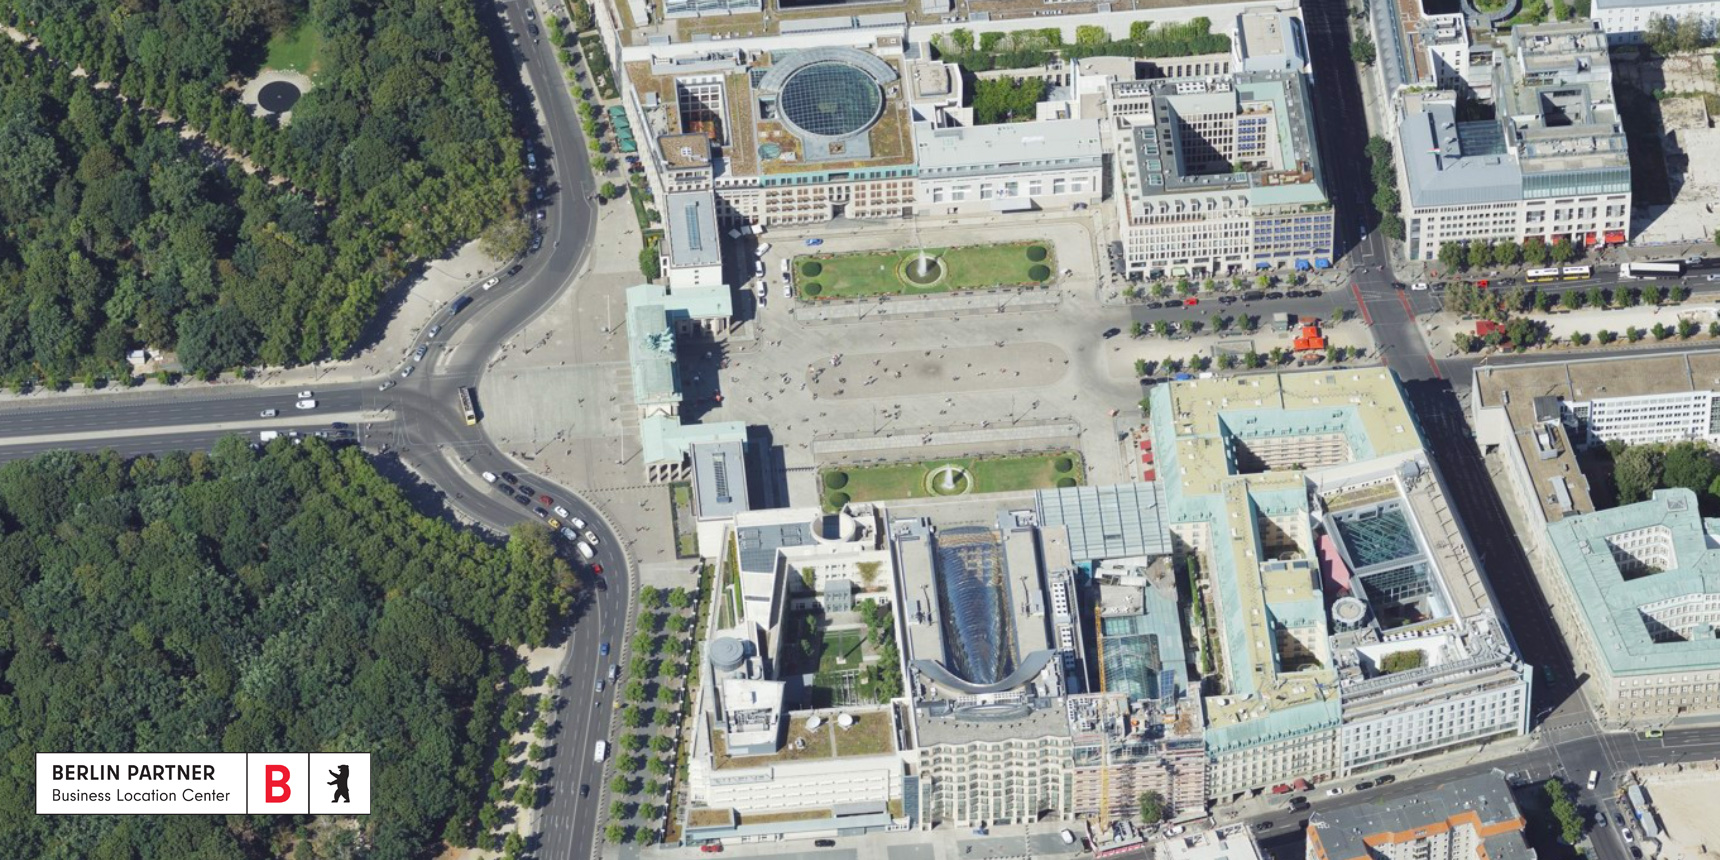 Oblique aerial view of the Brandenburger Tor in the Berlin Economic Atlas